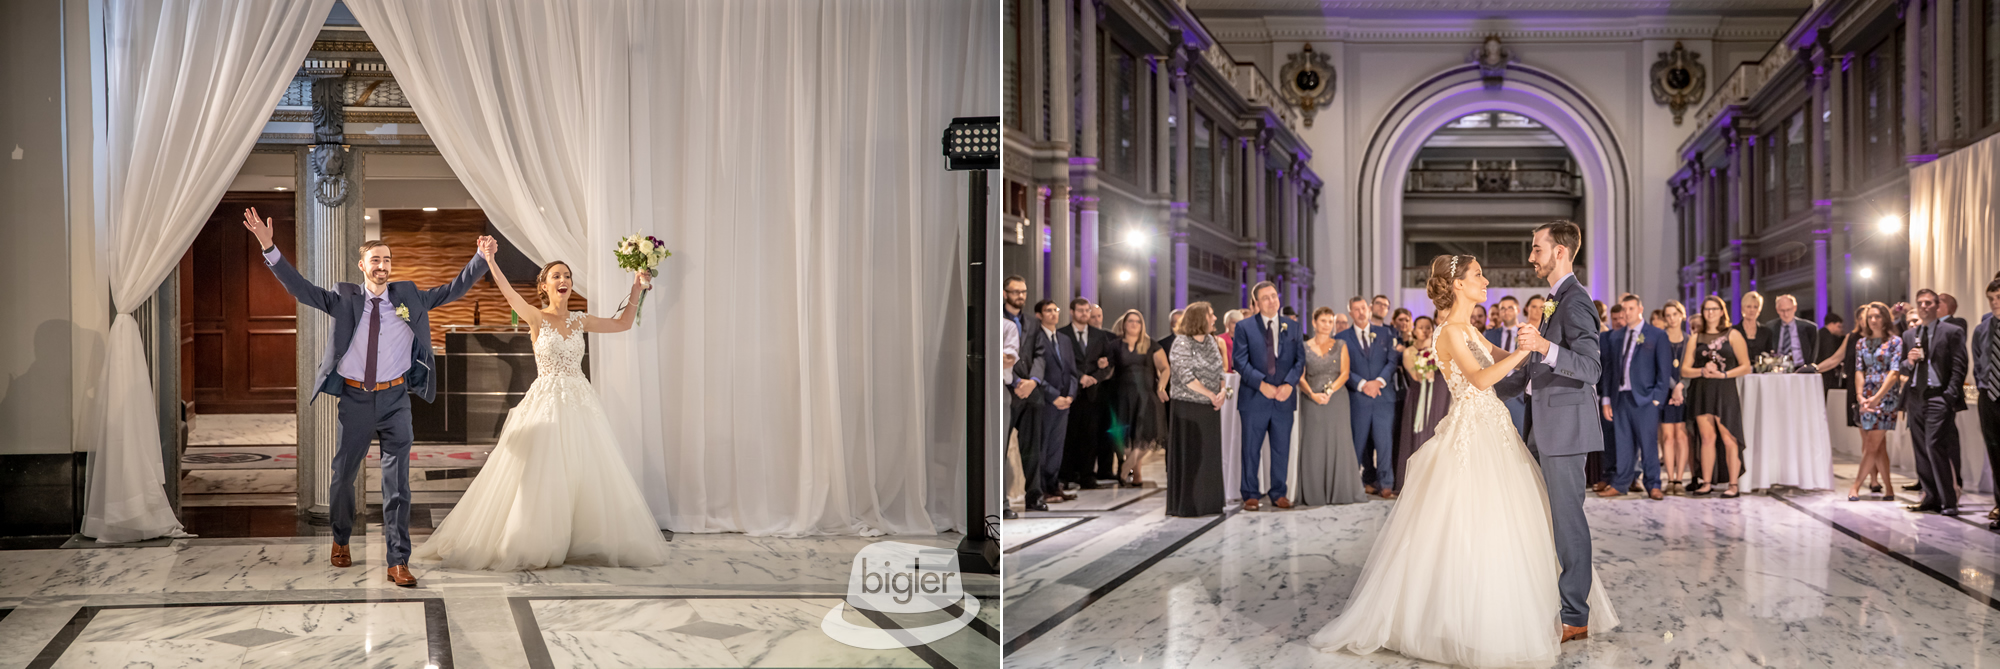 20181006_-_33_-_Michelle_&_Evan_Kiernan_Plaza_Wedding